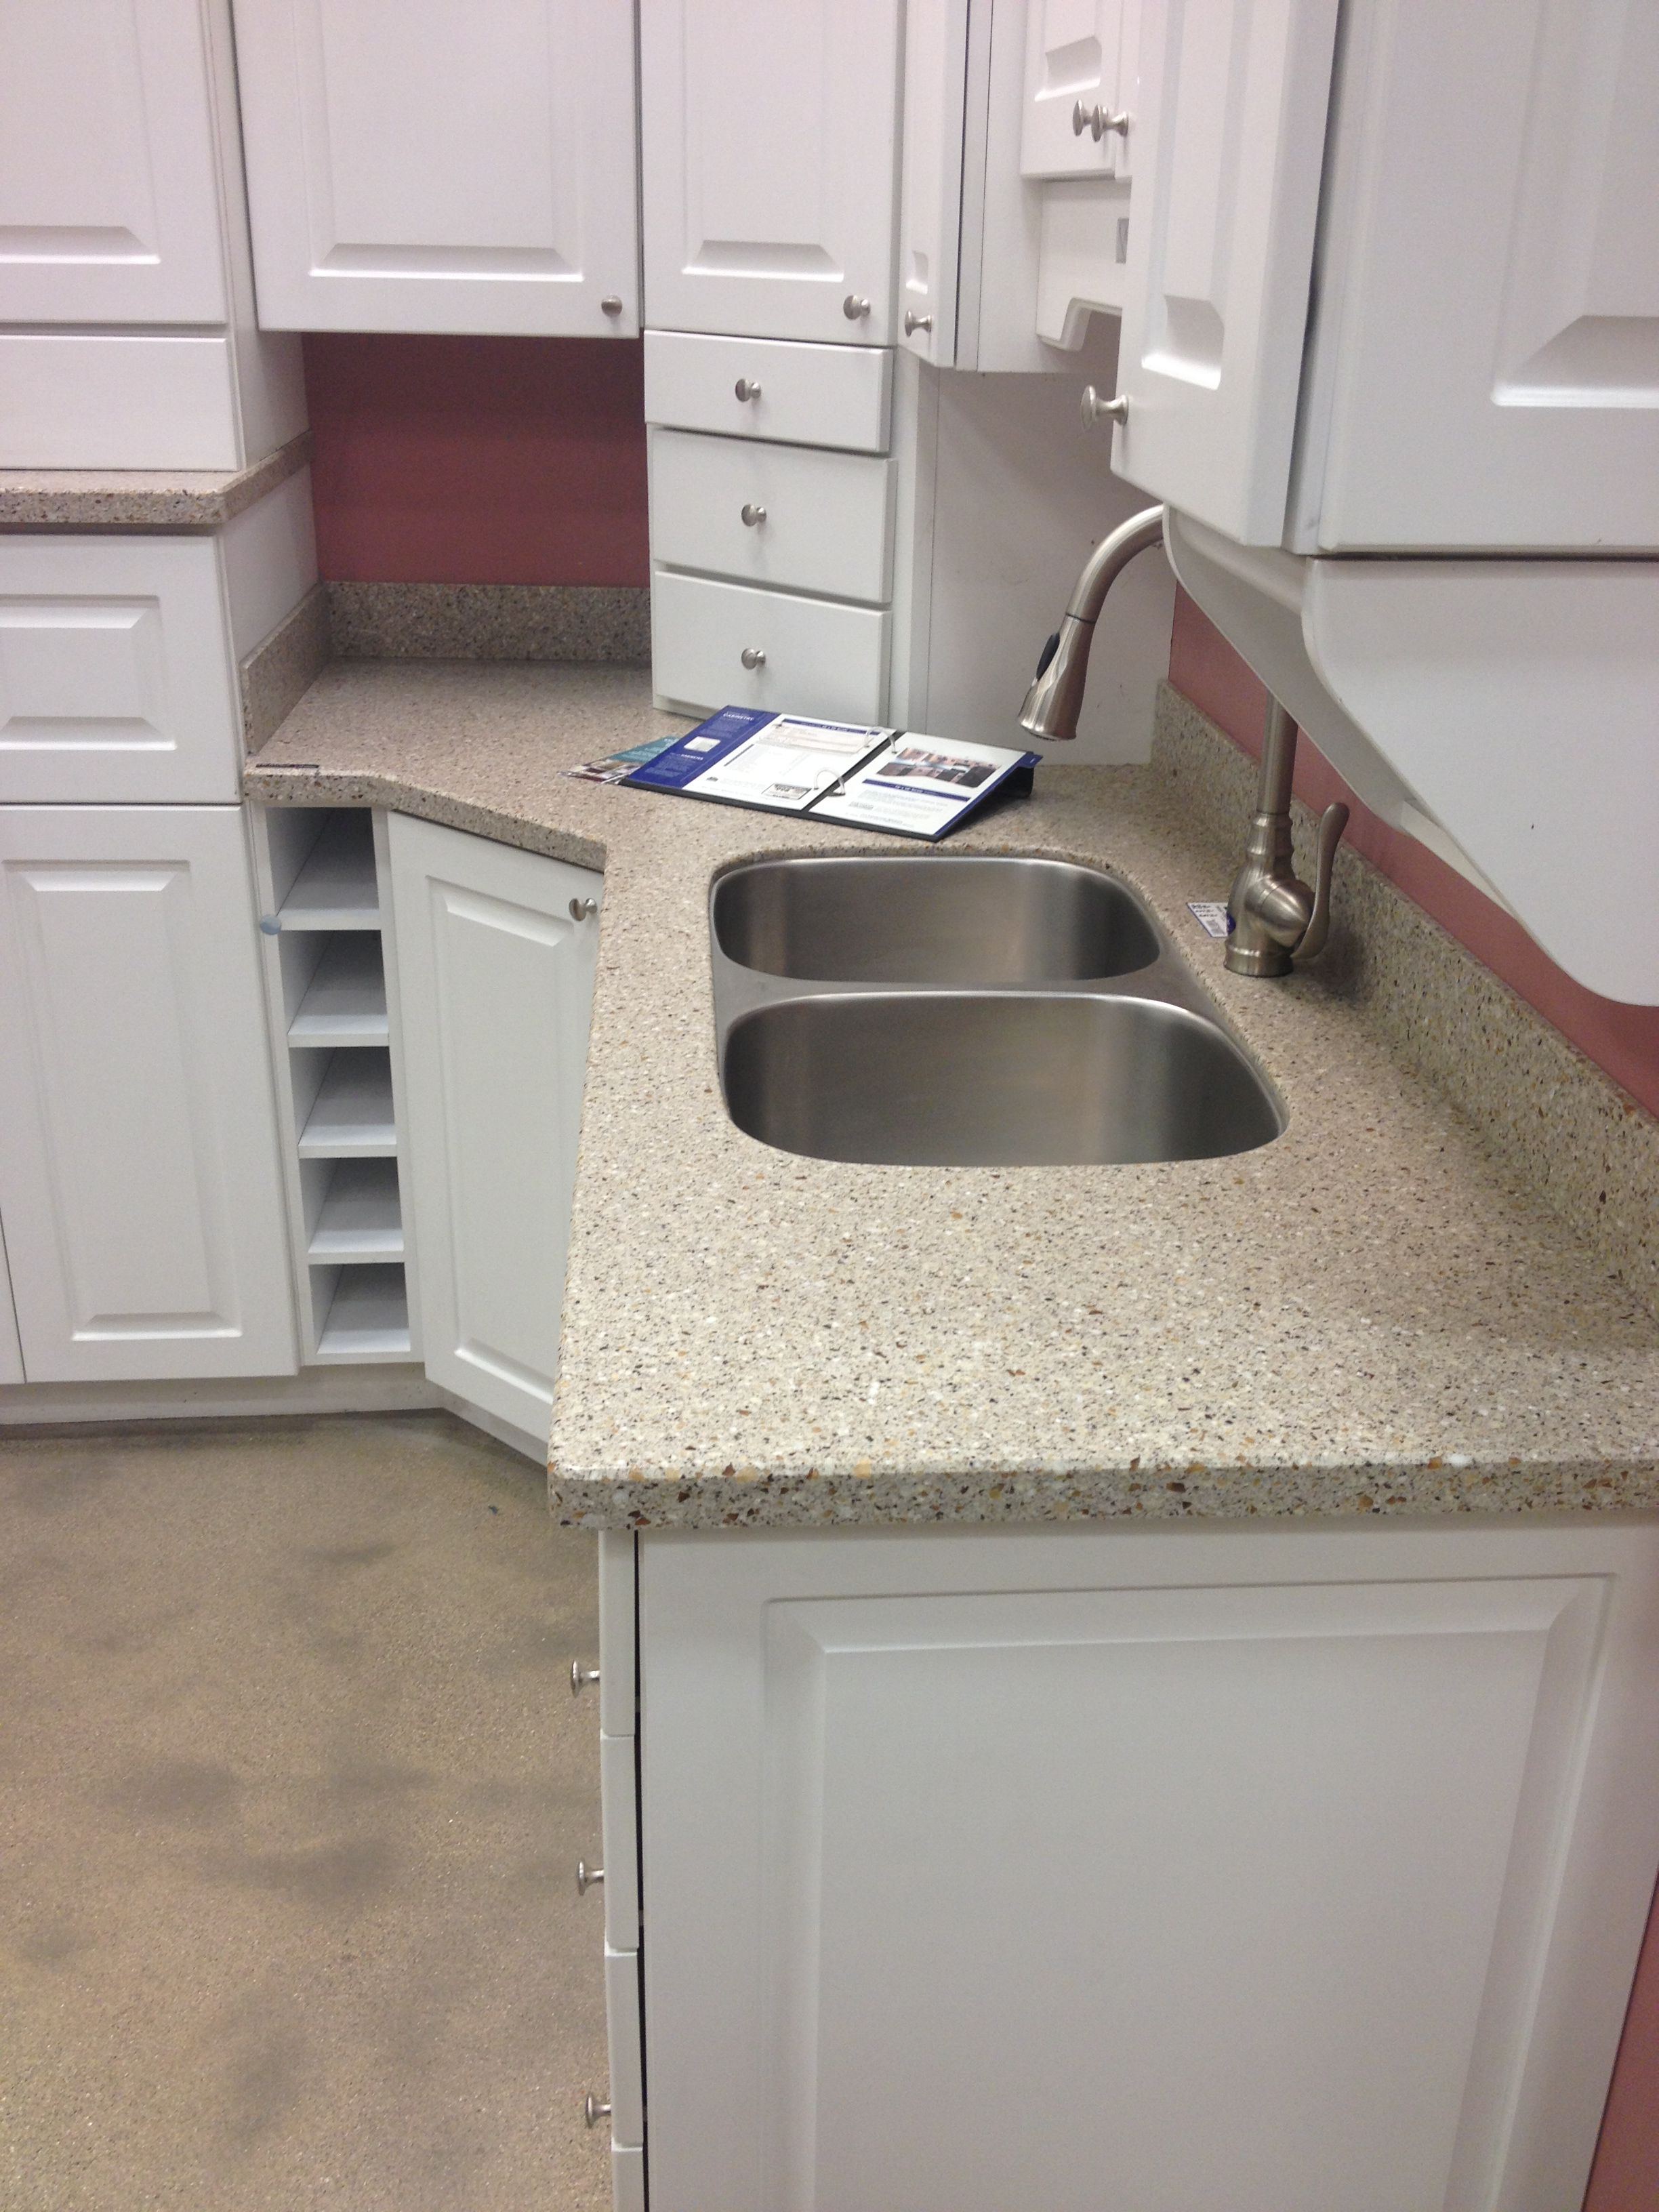 Lowes Sinks And Countertops Kvsrodehradun Org